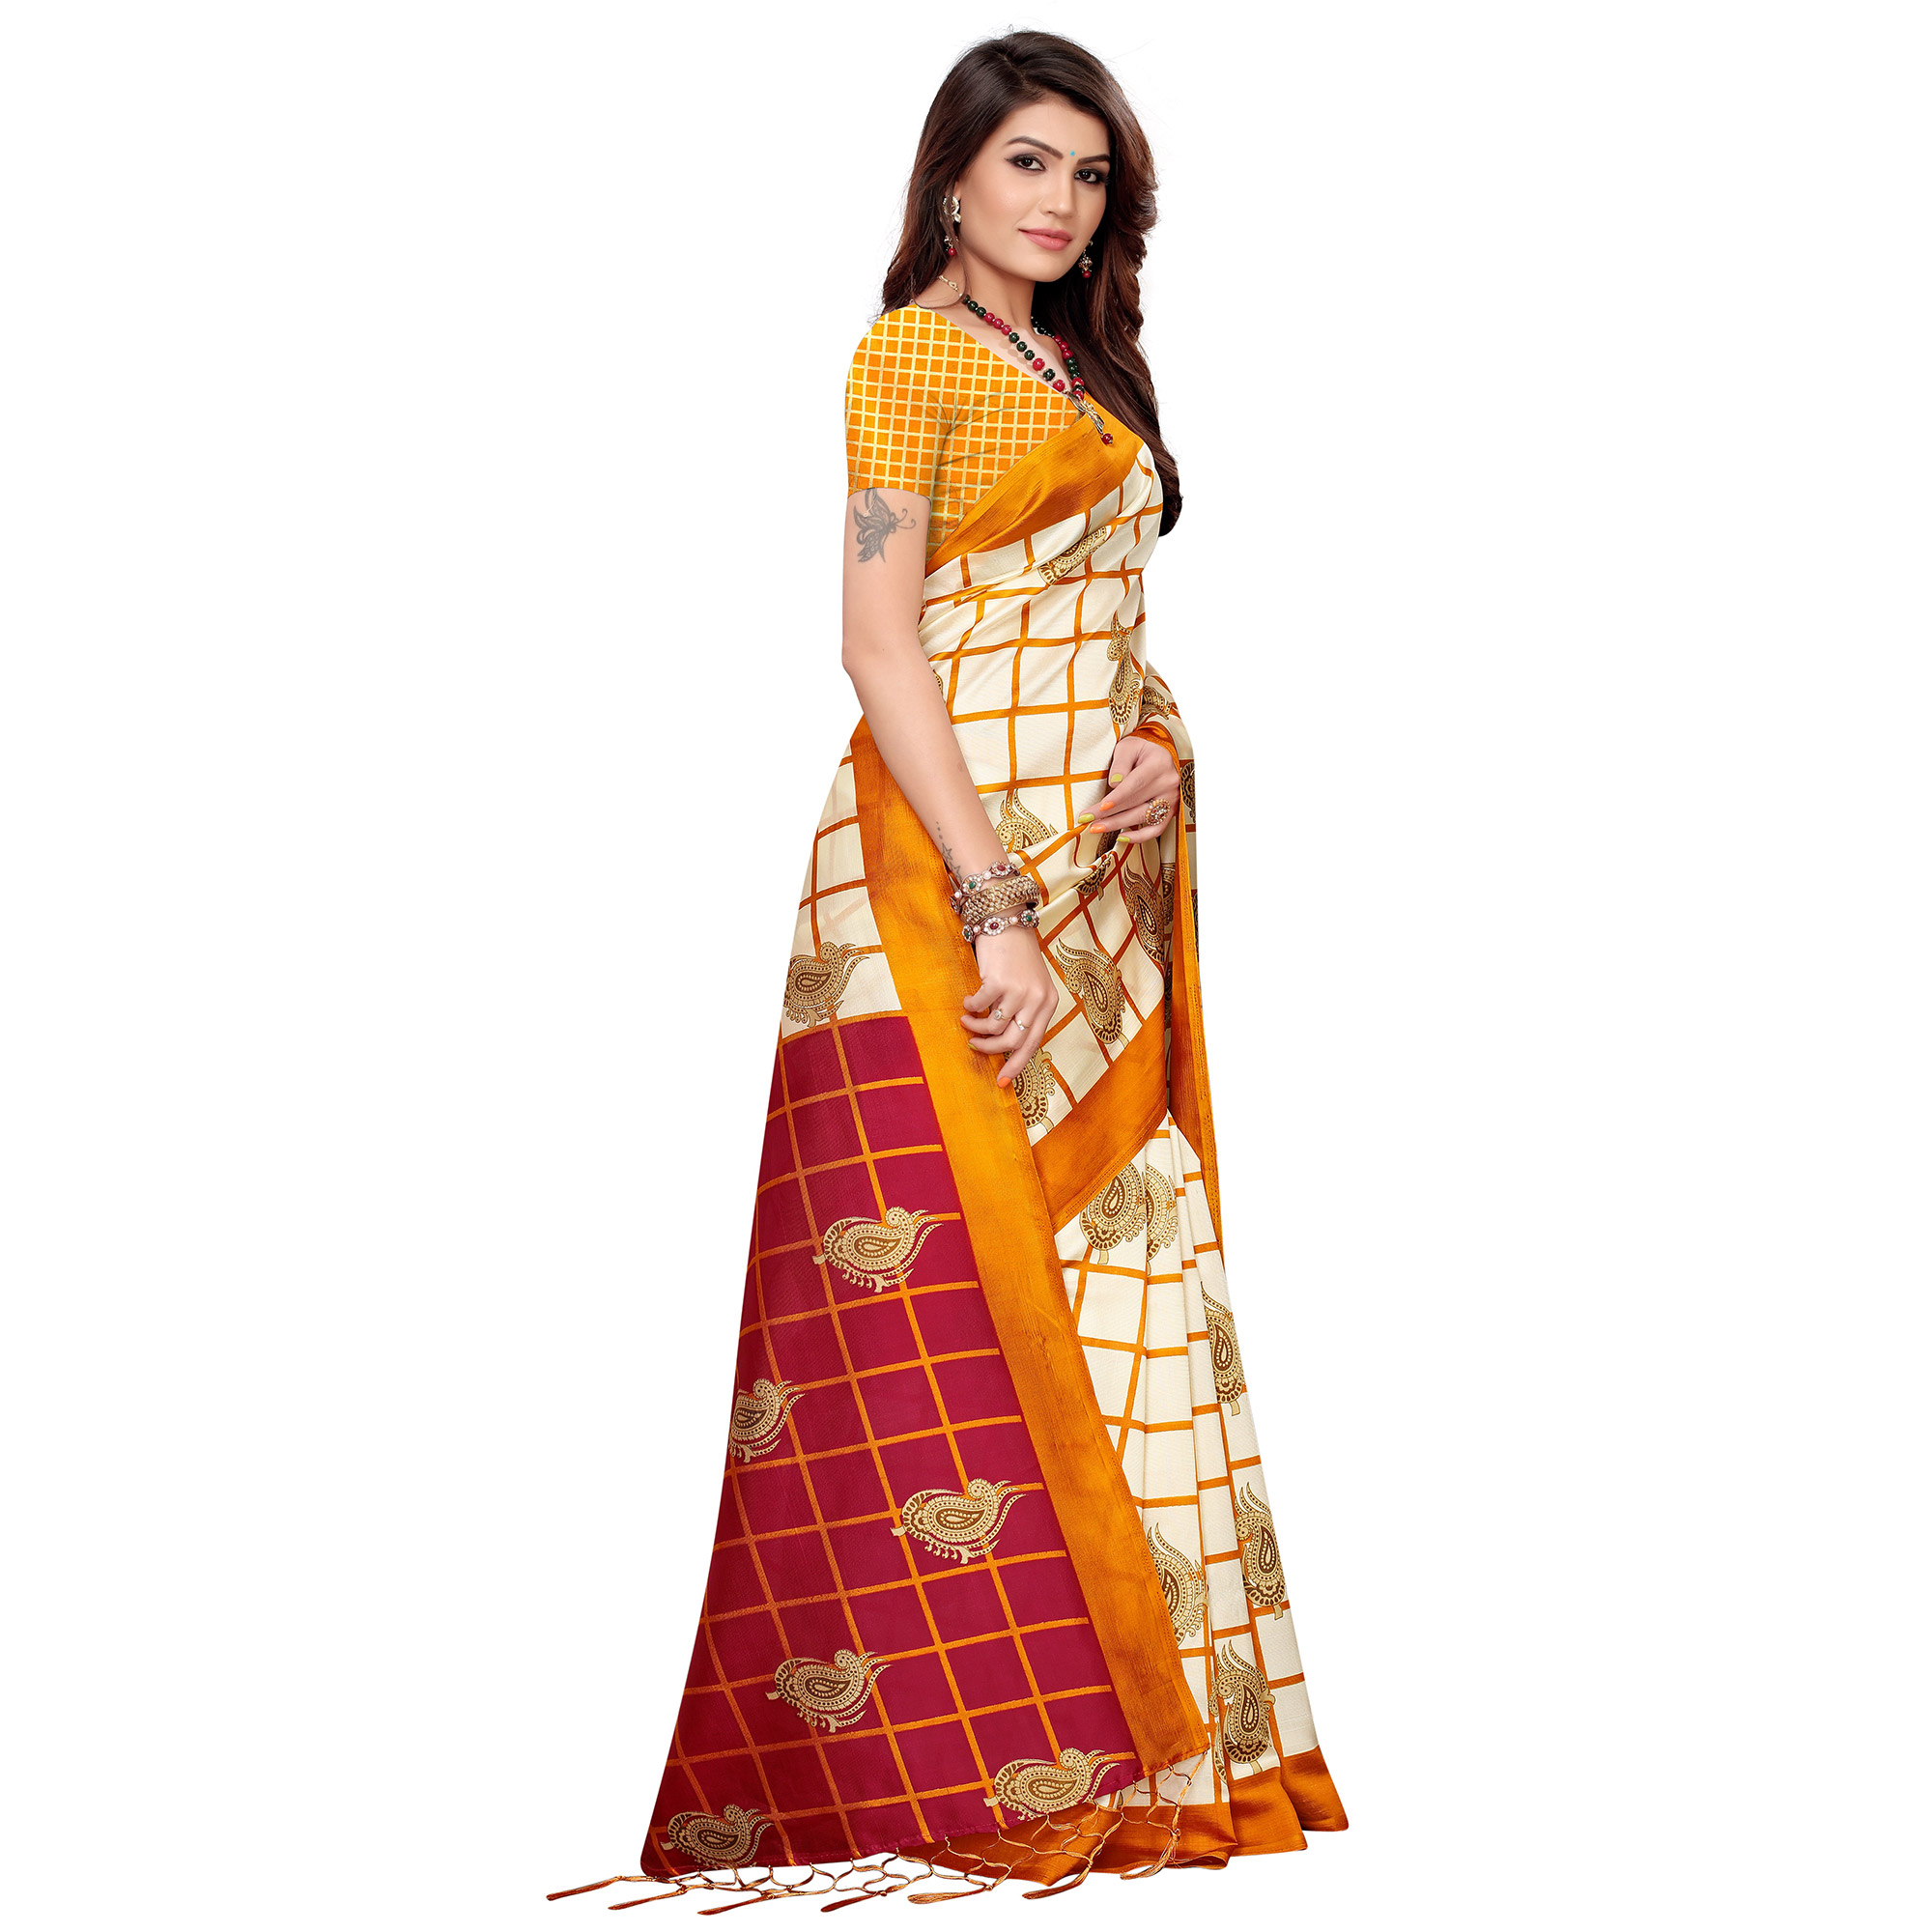 Jazzy Off White-Yellow Colored Festive Wear Printed Art Silk Saree